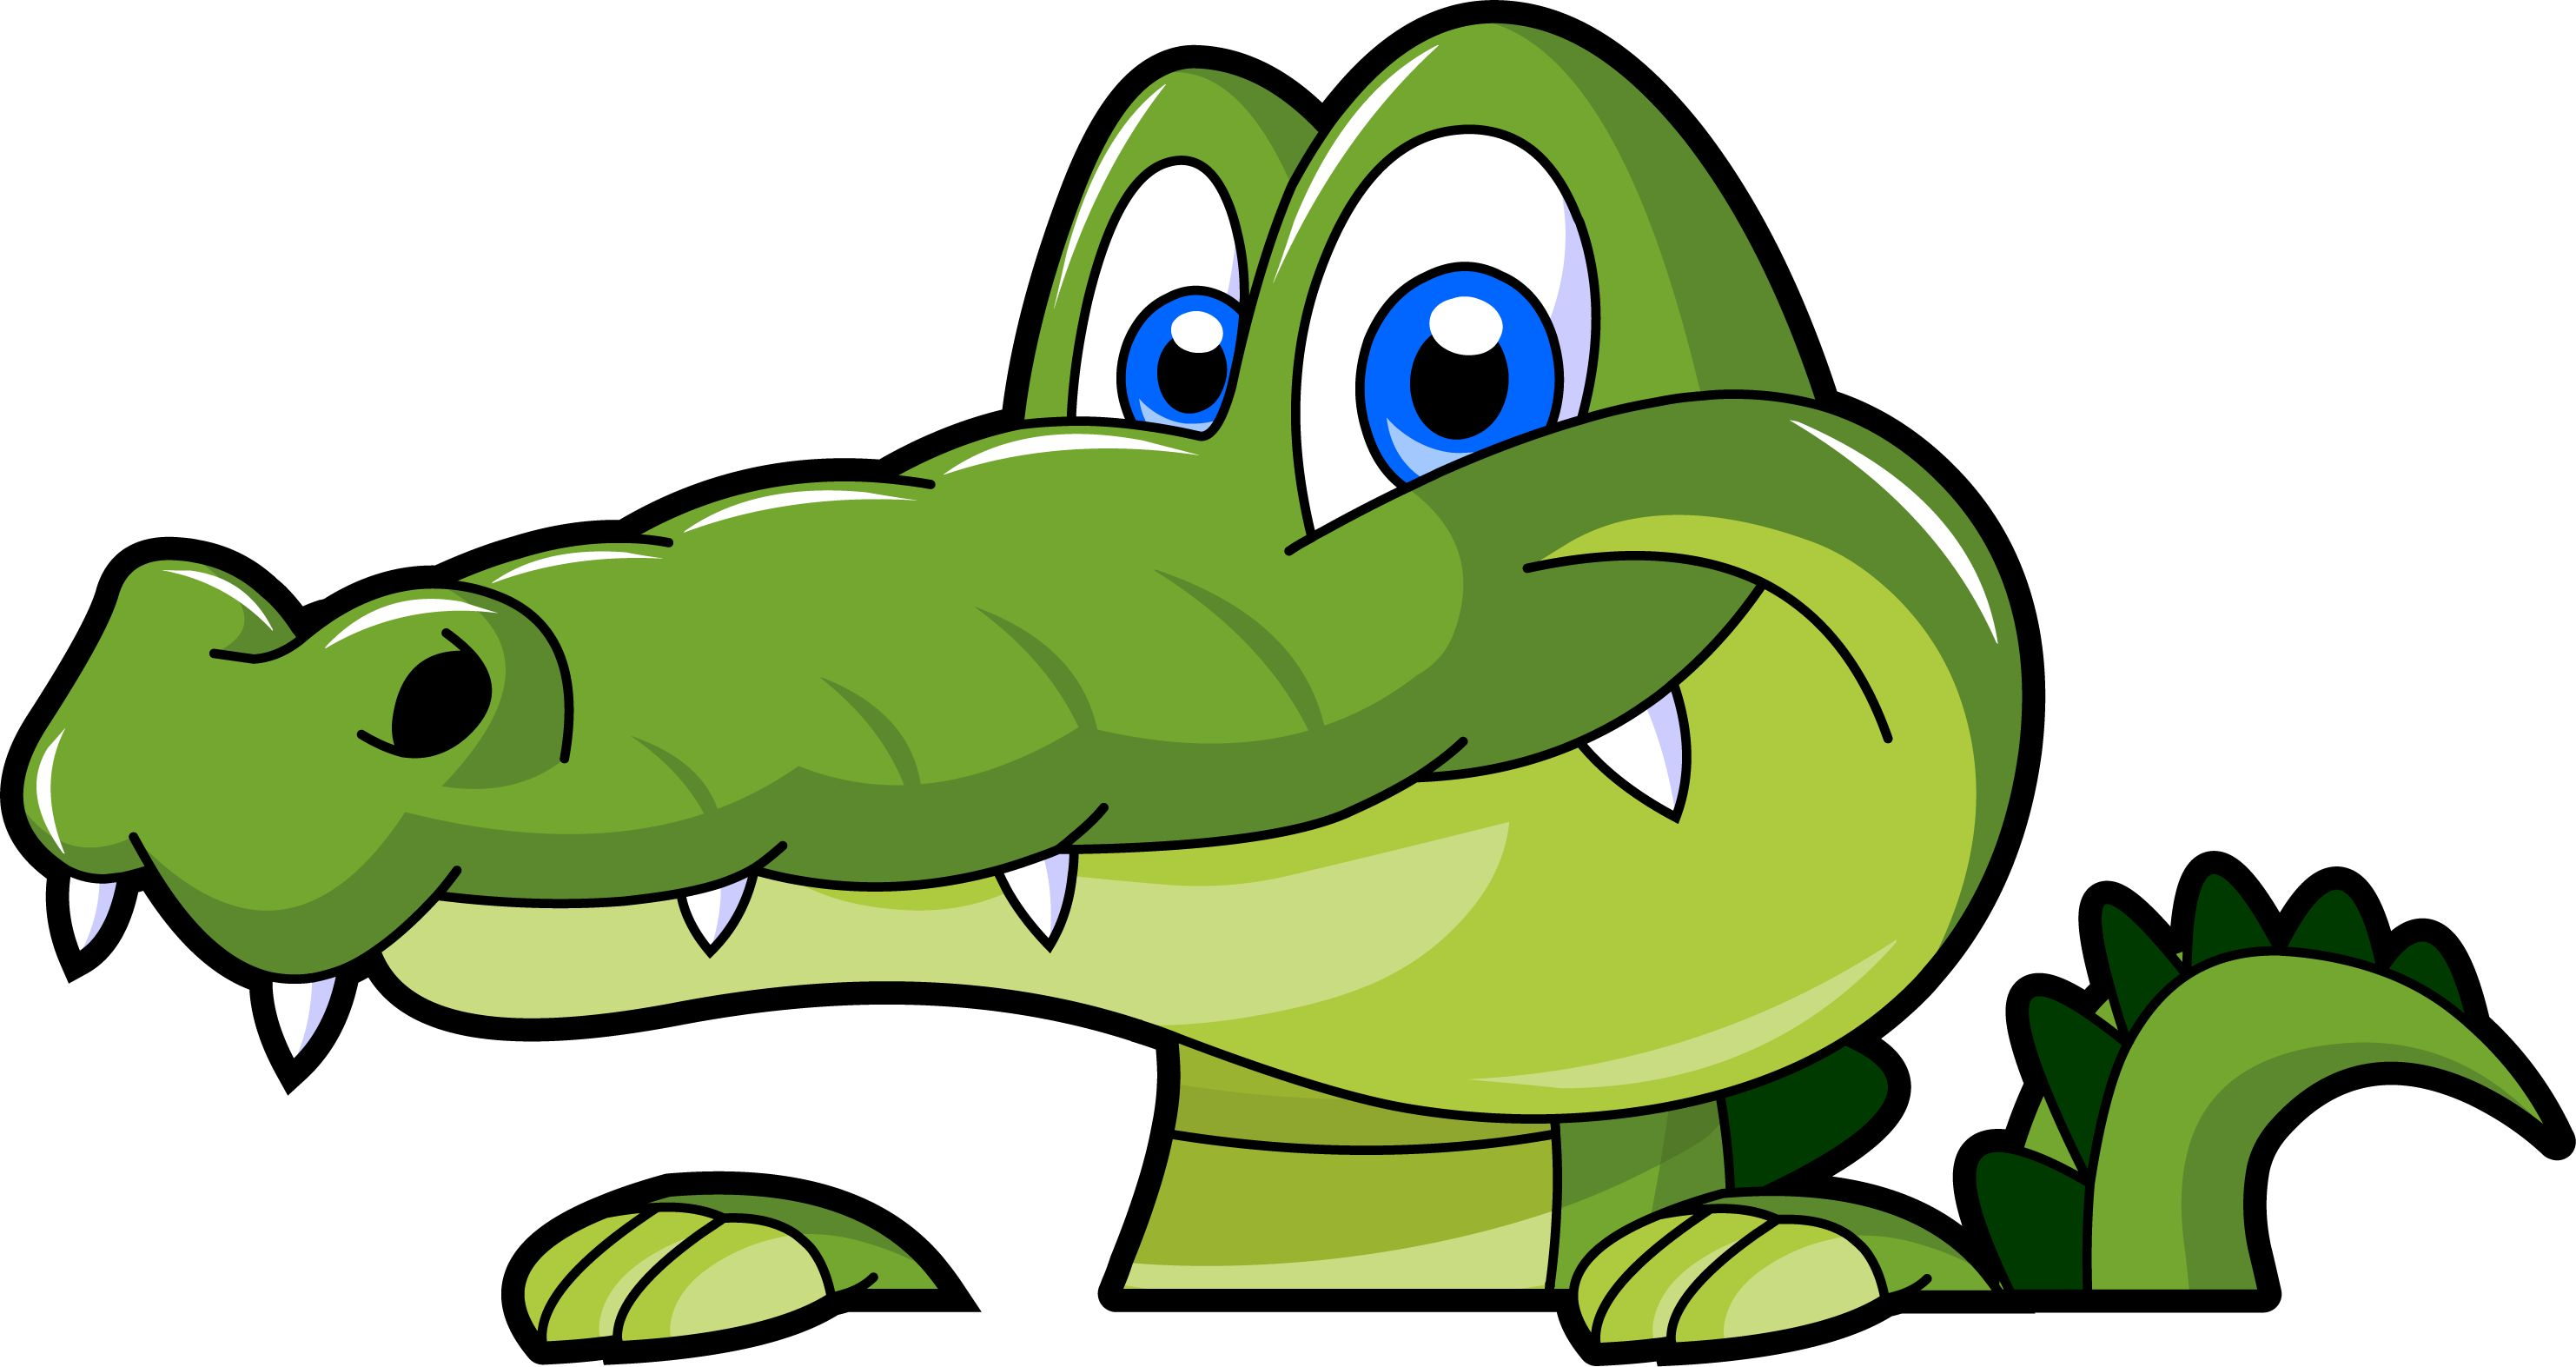 Cartoon Alligator Clipart - Cliparts.co - photo#17